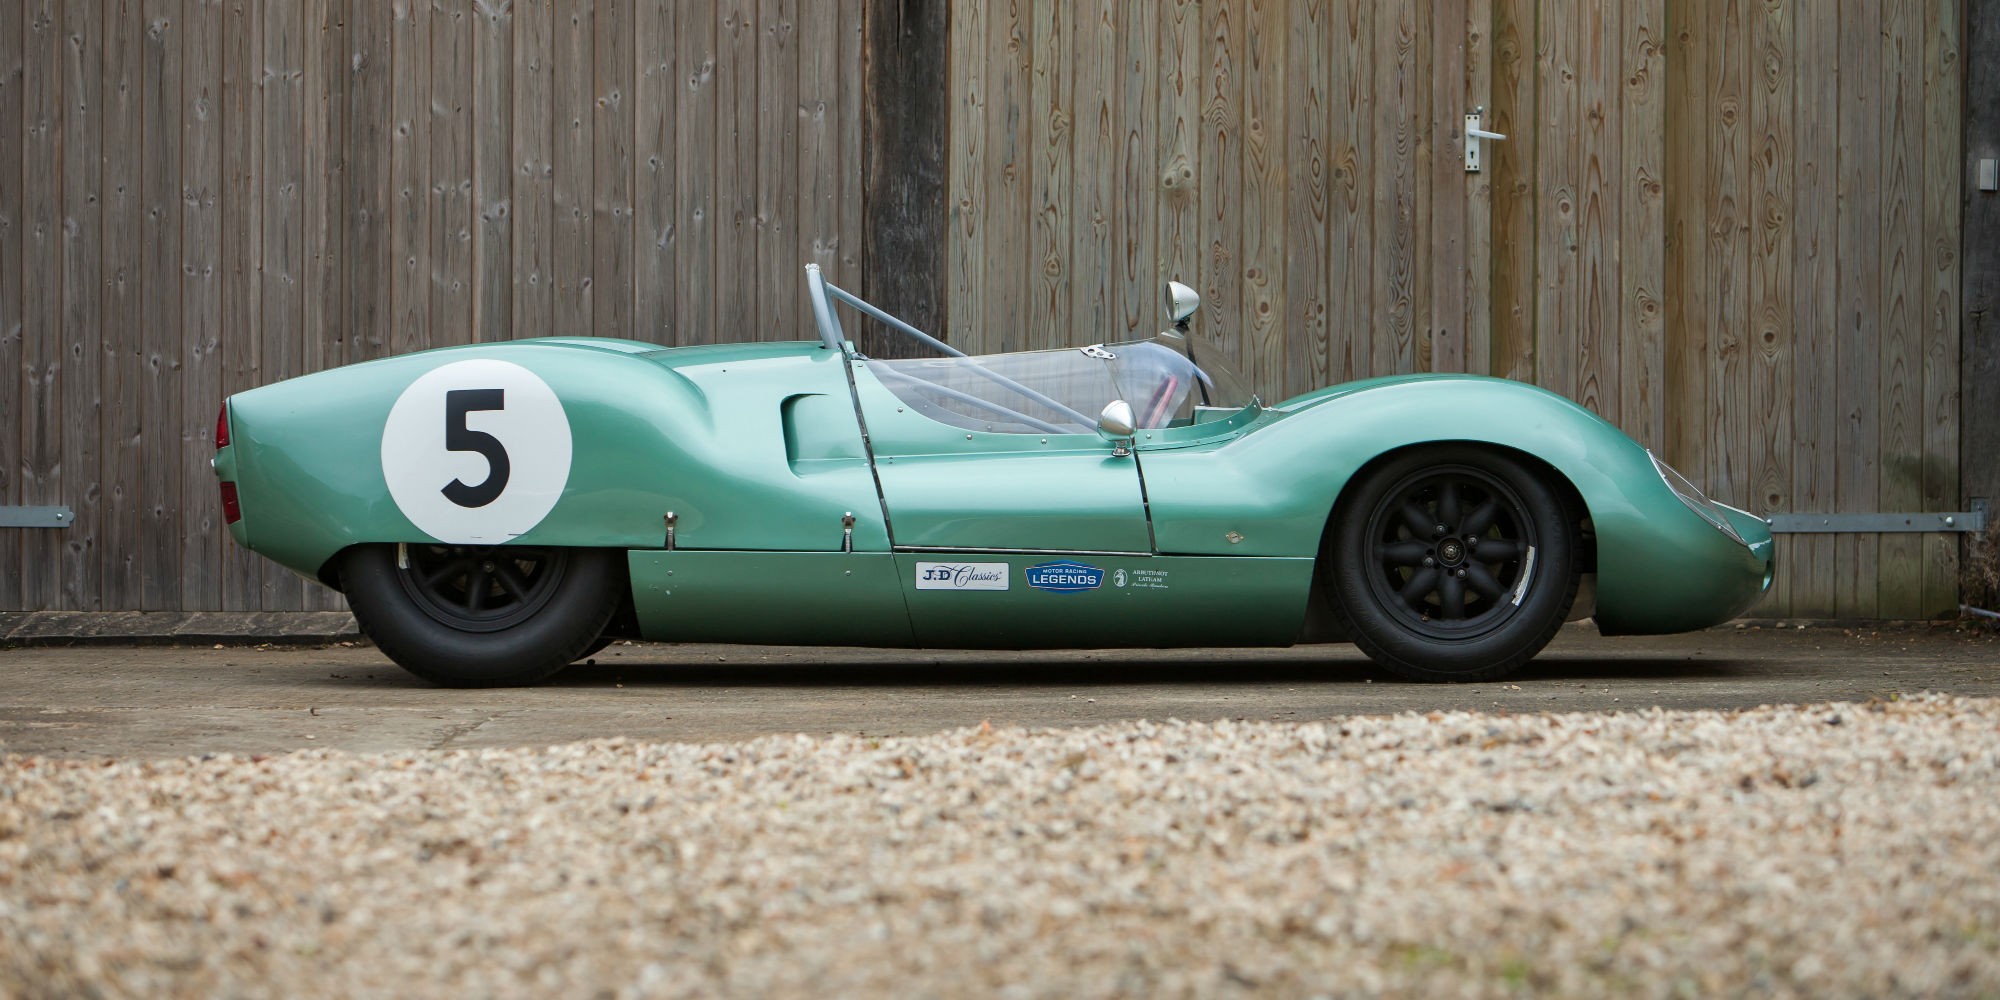 The Ex – Sir Stirling Moss, Bib Stillwell, 'Coil Sprung' 1959 Cooper T49 'Monaco'